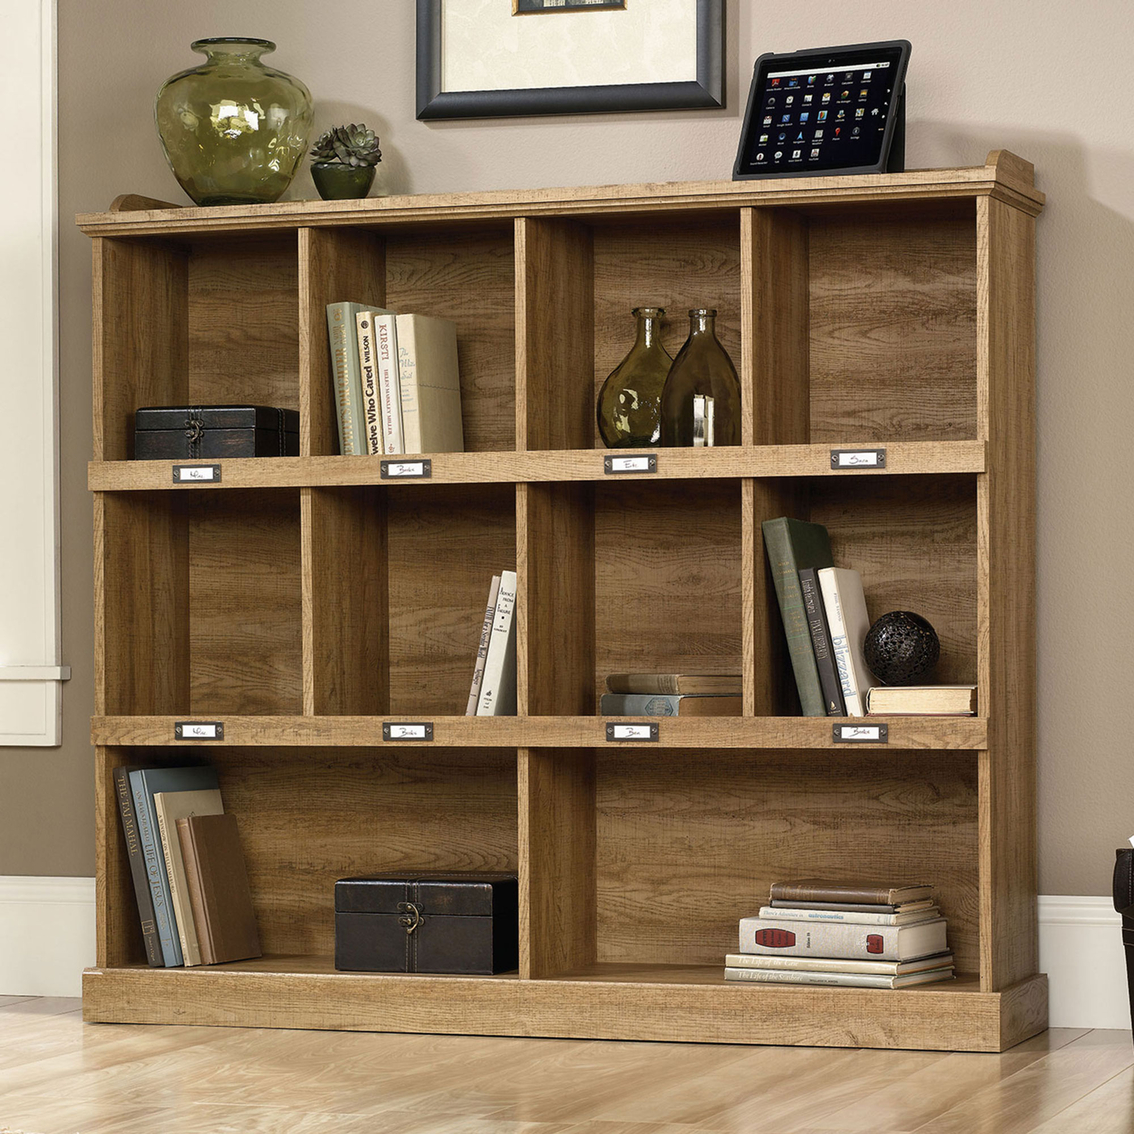 shelves sauder barrister category by organization bookcase bookcases shop